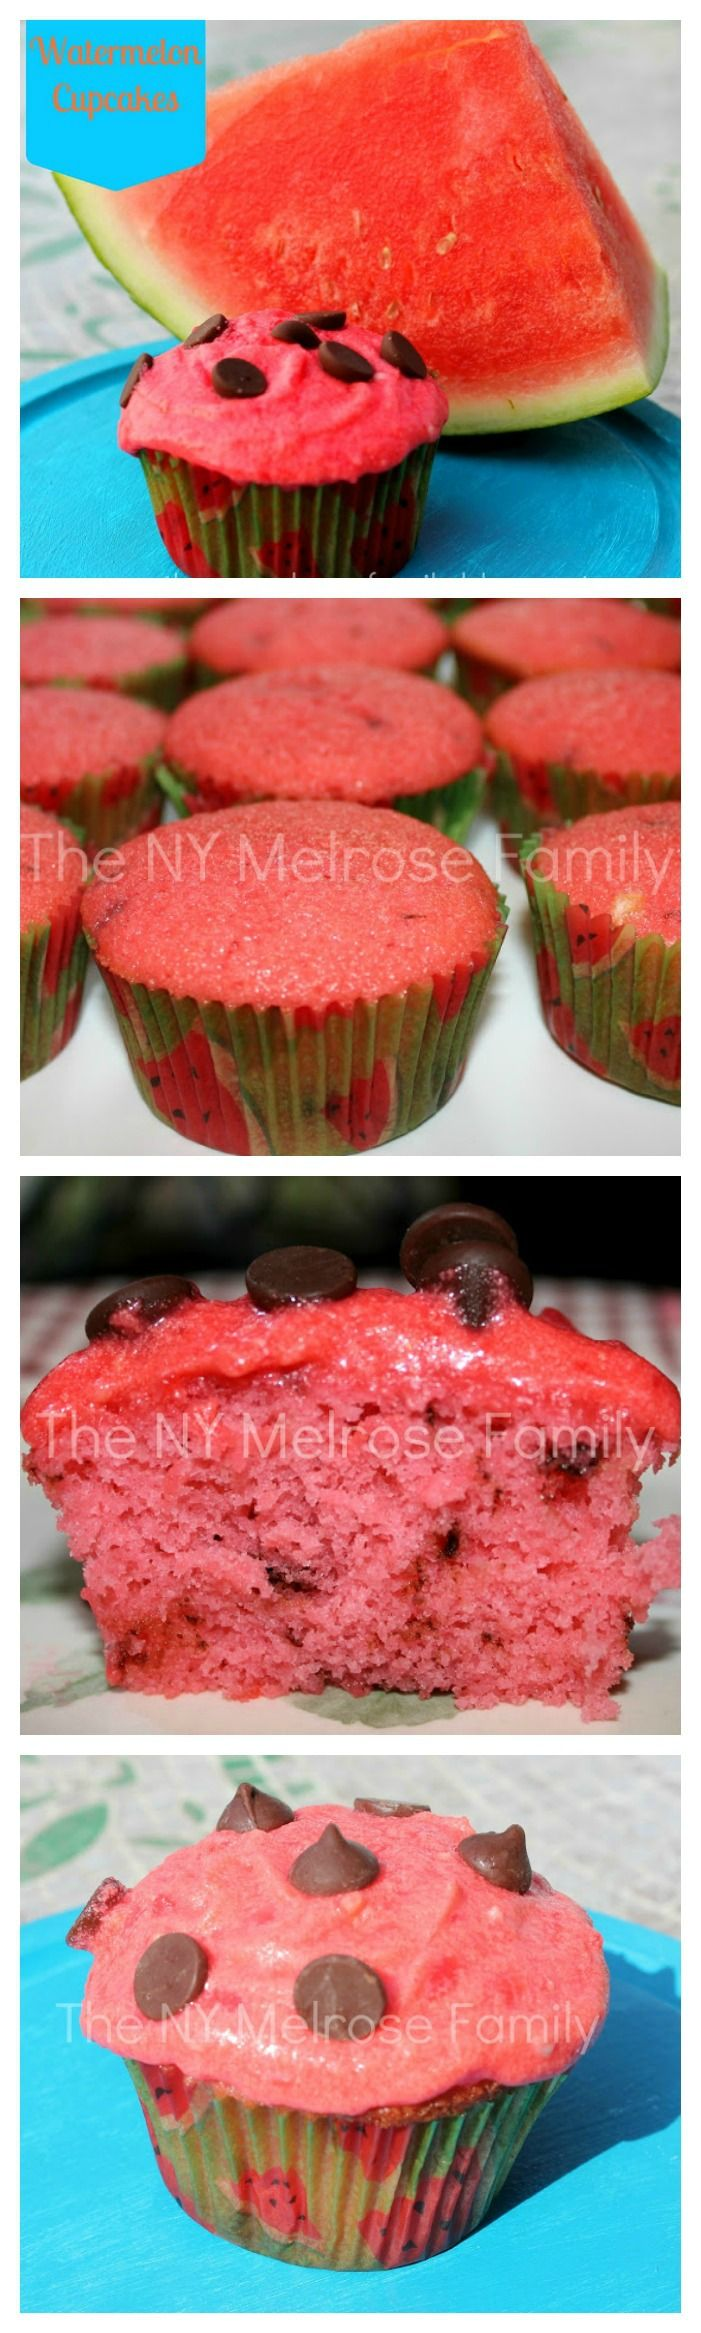 Watermelon Cupcakes with chocolate chips and watermelon buttercream frosting!